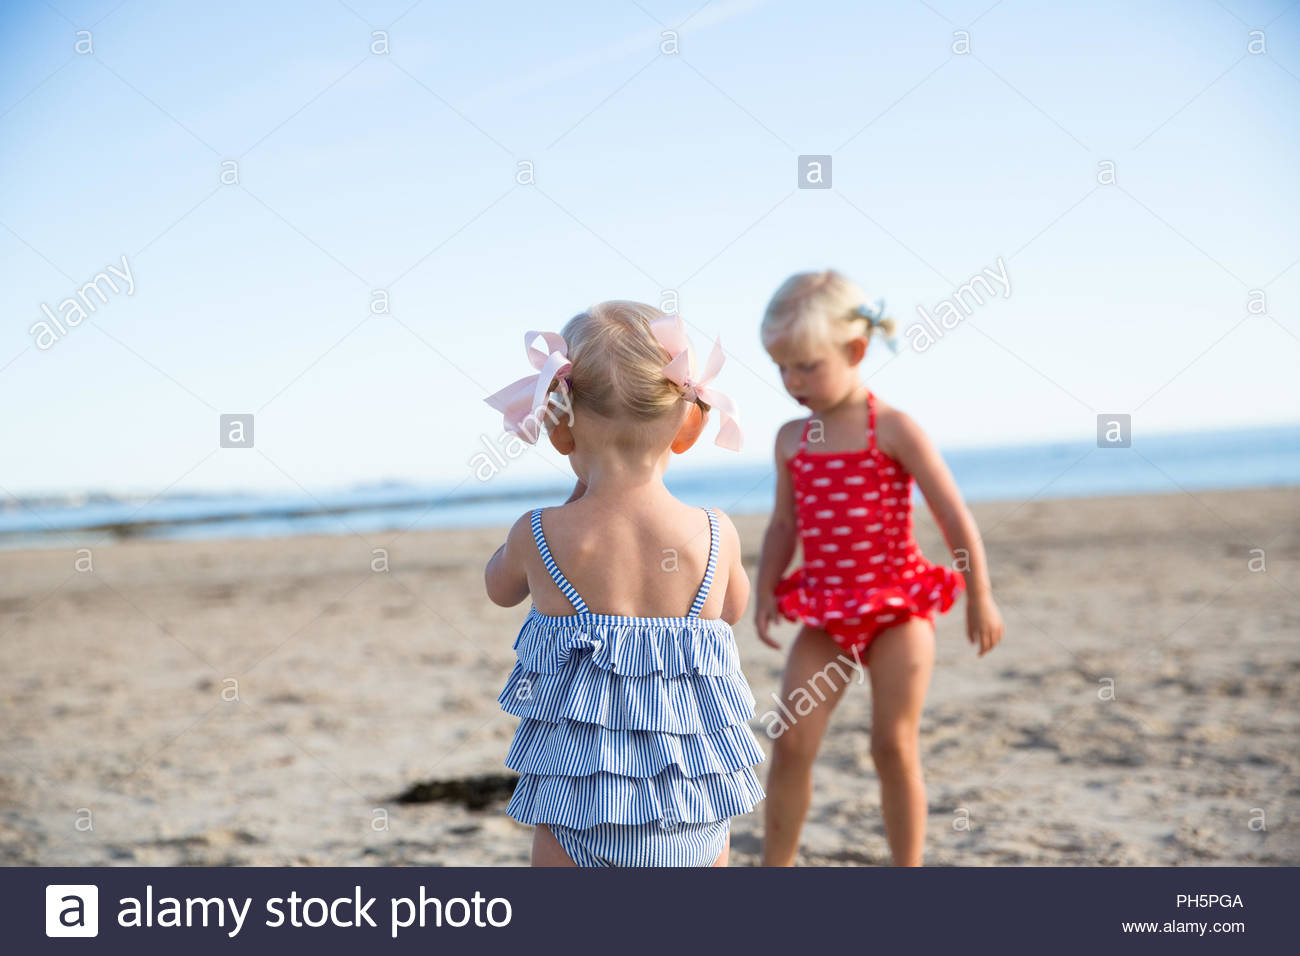 Sisters in swimsuits on beach - Stock Image